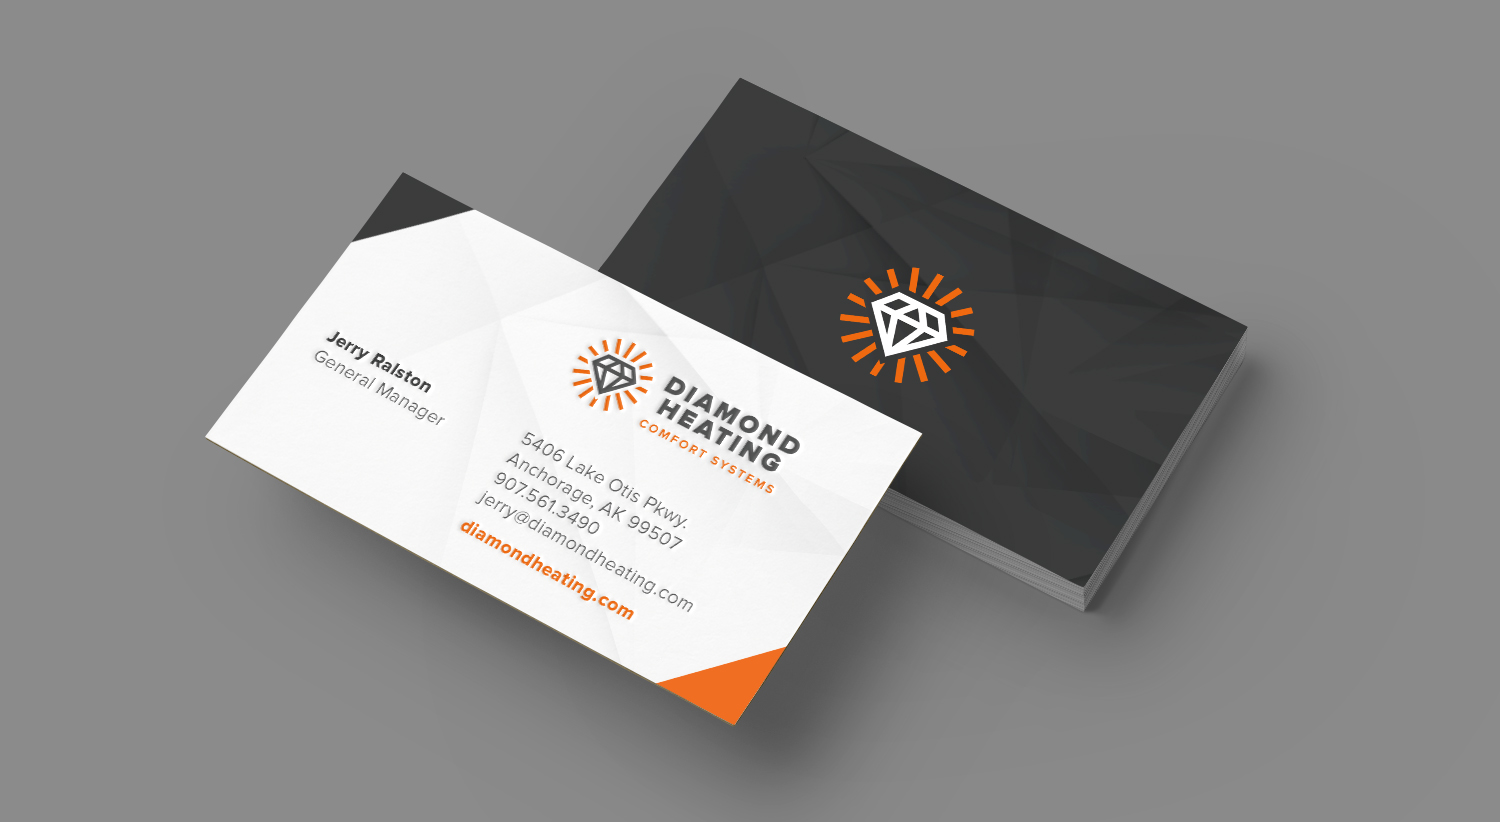 Business-Card-Mockup.jpg